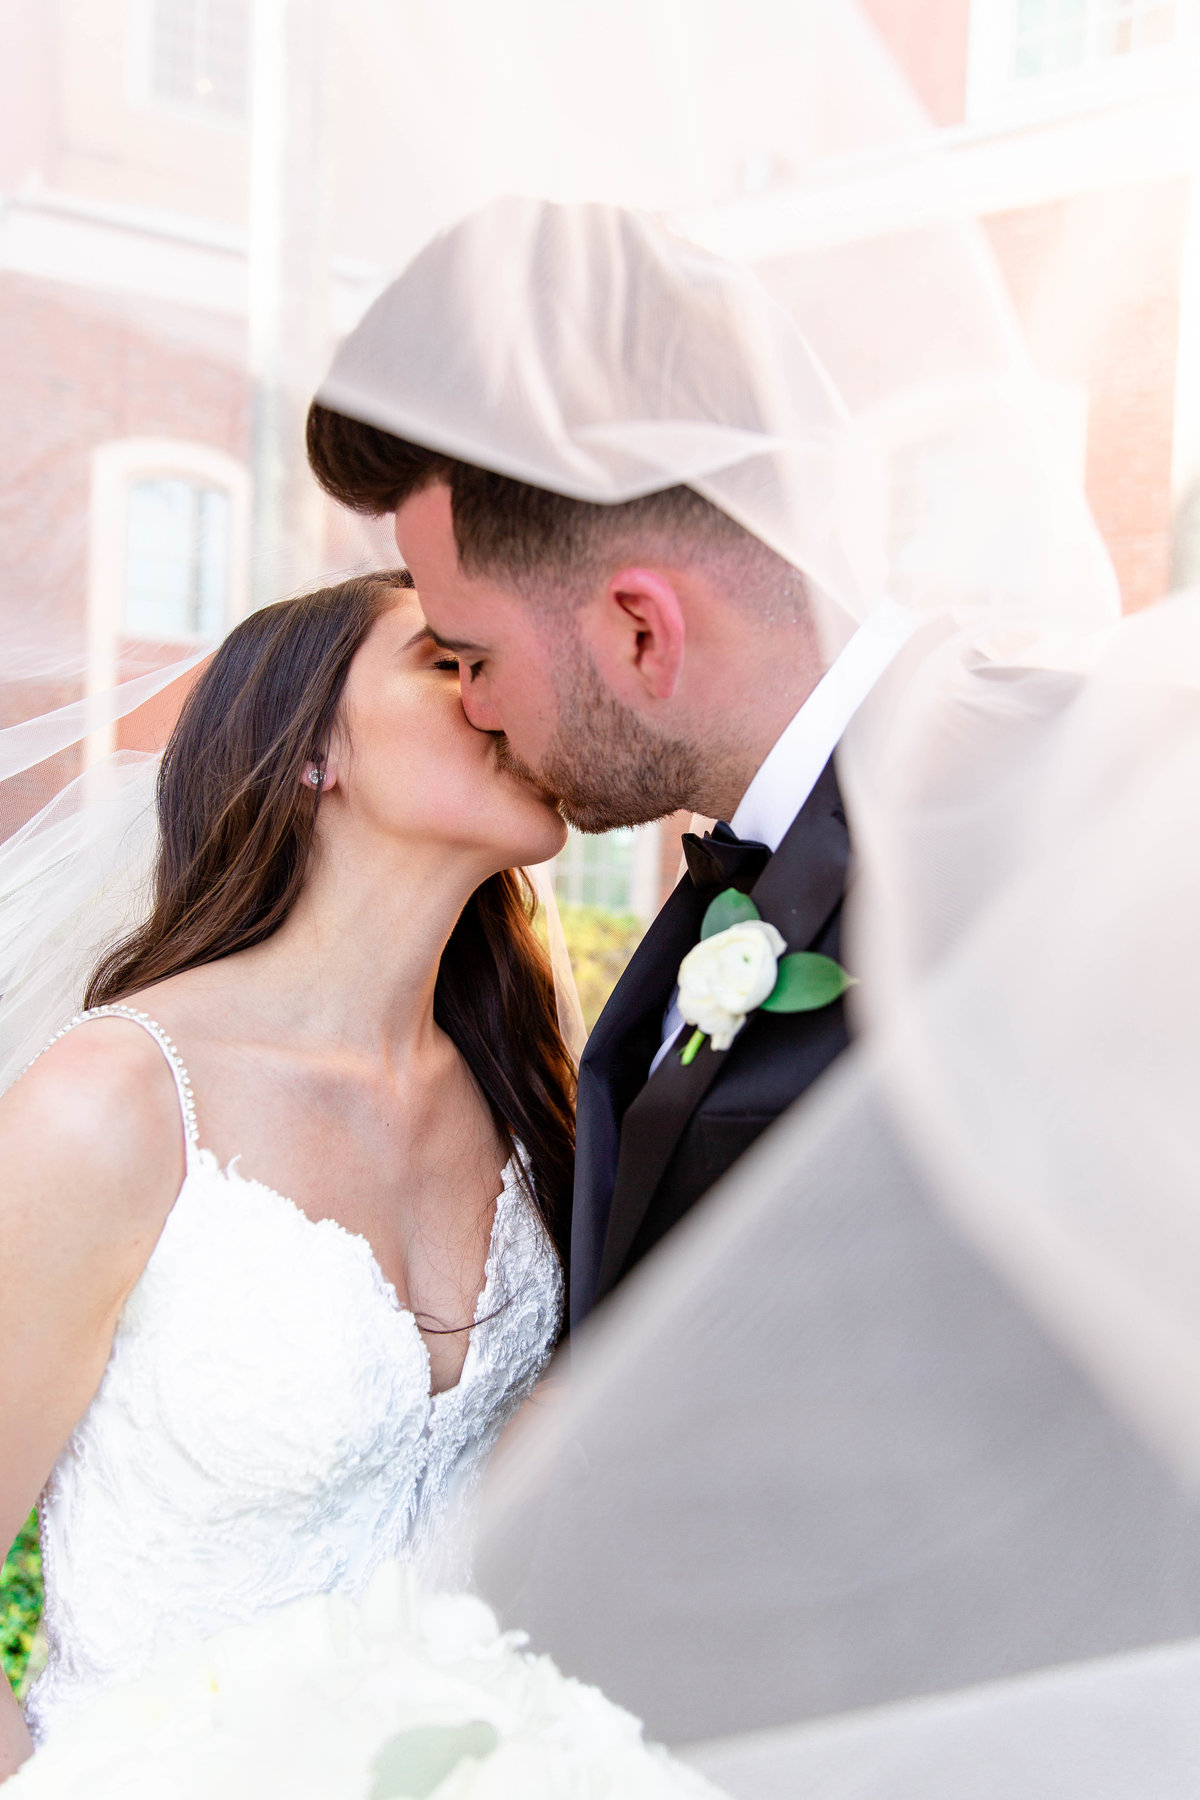 Bride and groom kiss on wedding day under veil in black tie wedding attire